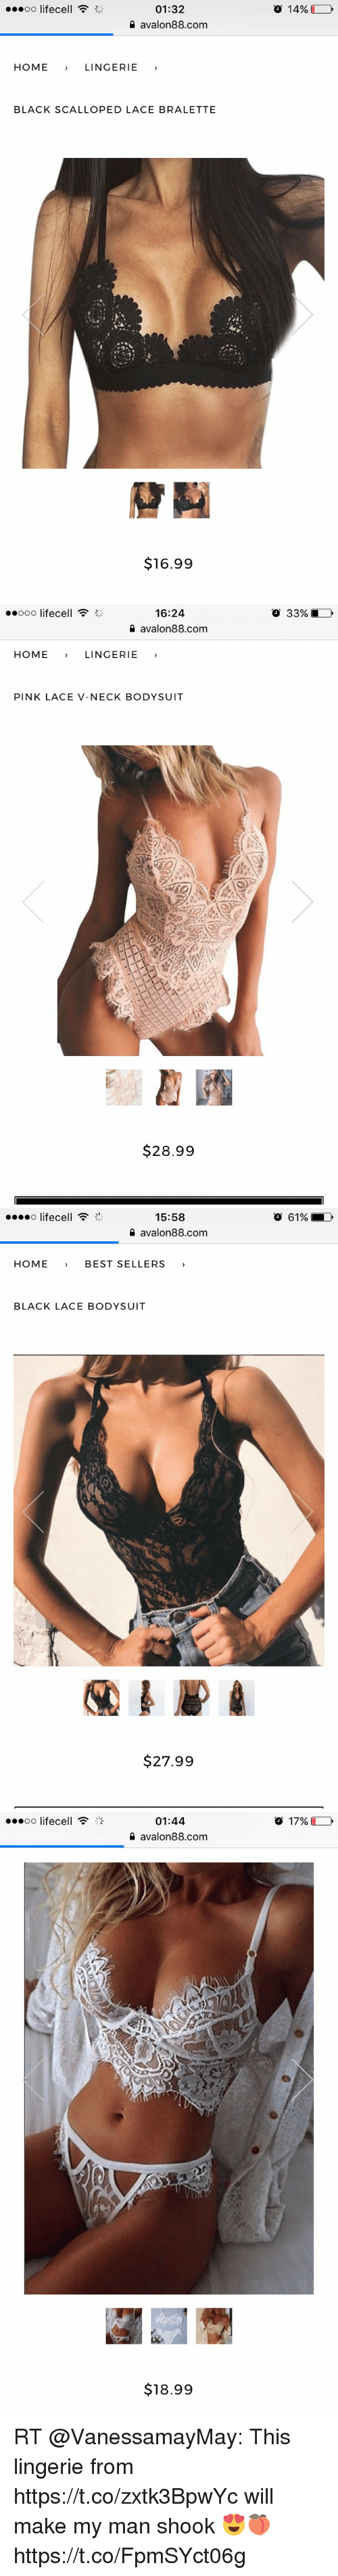 "Best, Black, and Blacked: O 14%  01:32  avalon88.com  HOME  LINGERIE  BLACK SCALLOPED LACE BRALETTE  $16.99   16:24  avalon88.com  o 33%  HOMELINGERIE  PINK LACE V-NECK BODYSUIT  $28.99   15:58  1 avalon88.com  o lifecell ""  o 61%  HOME BEST SELLERS  BLACK LACE BODYSUIT  $27.99   ..oo lifecell  01:44  1 avalon88.com  17%  $18.99 RT @VanessamayMay: This lingerie from https://t.co/zxtk3BpwYc will make my man shook 😍🍑 https://t.co/FpmSYct06g"